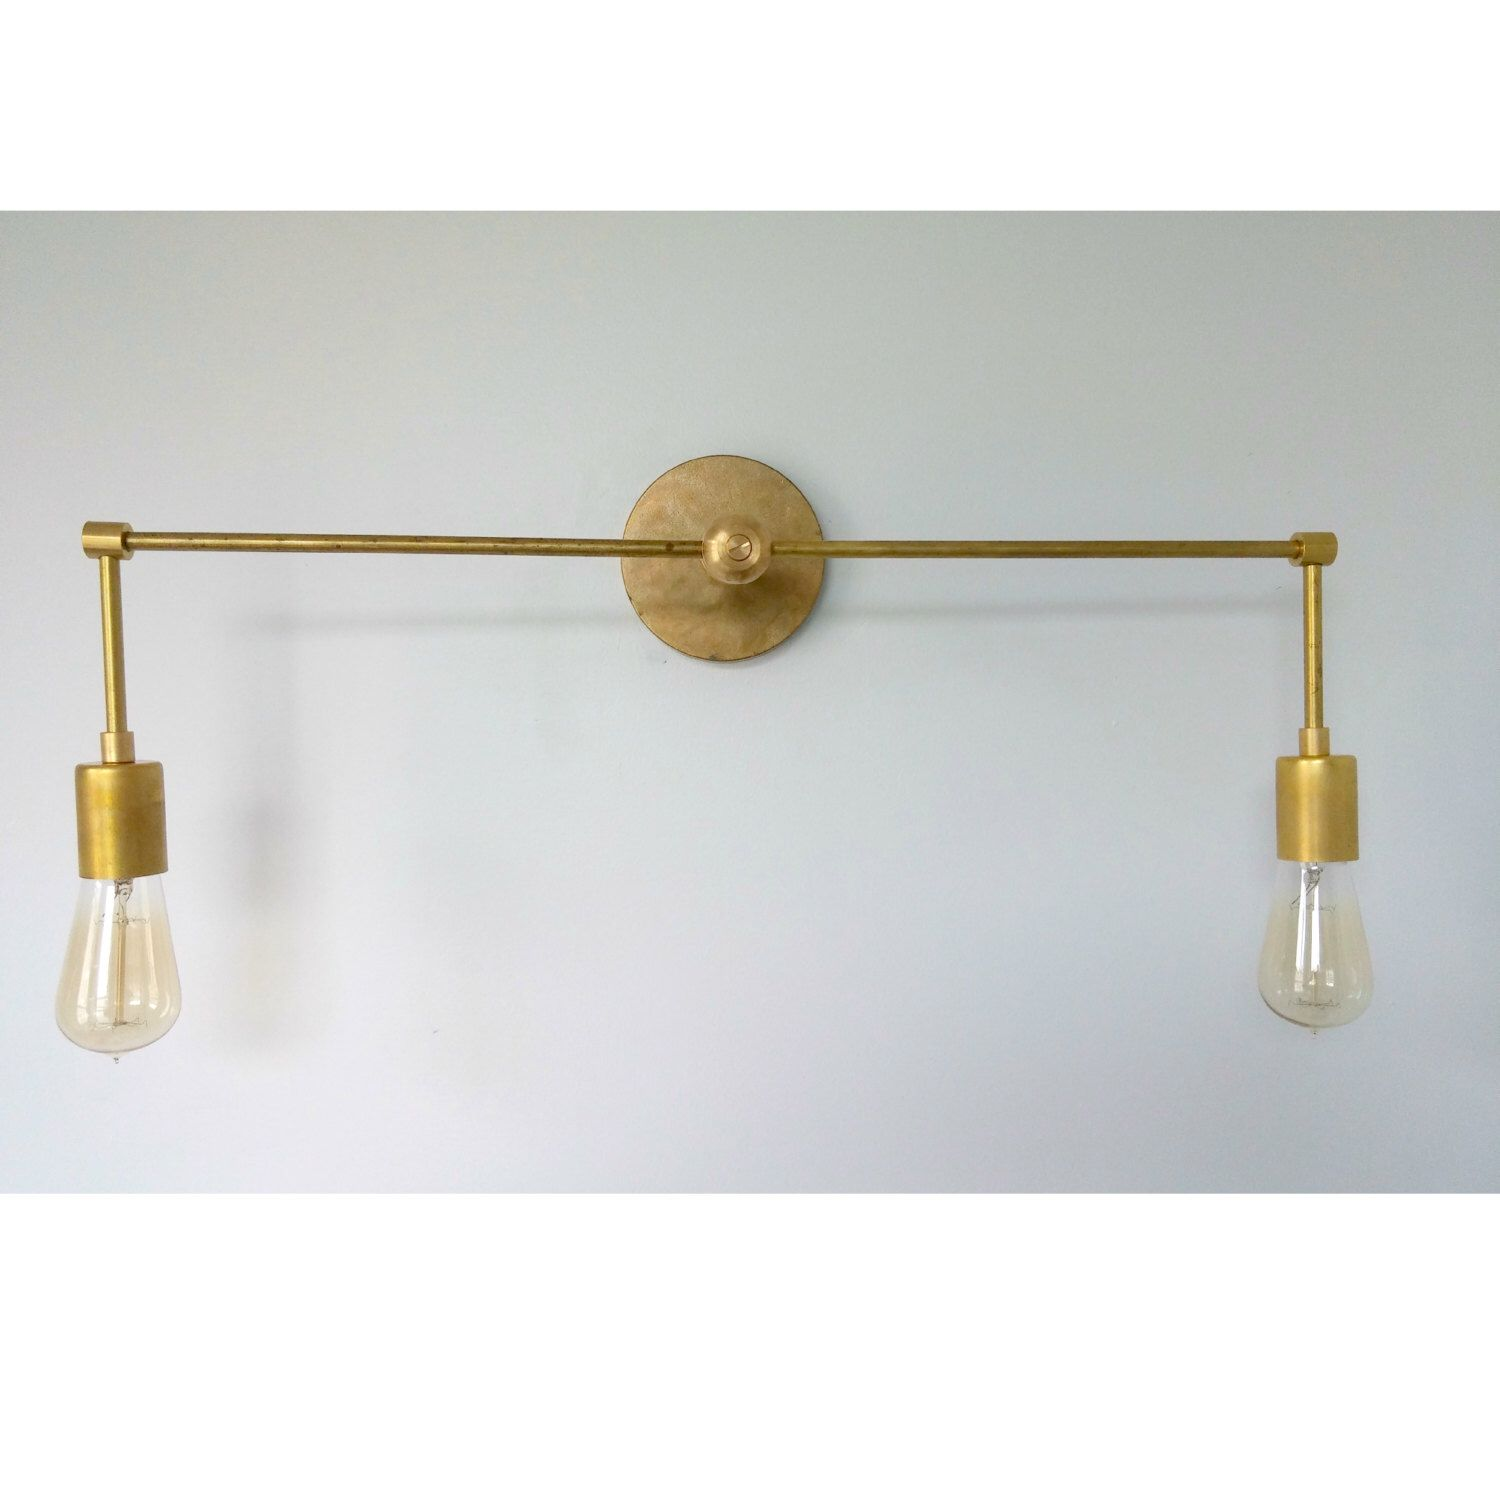 The magazine double sconce double light sconce brass sconce the magazine double sconce double light sconce brass sconce brass bathroom light aloadofball Gallery